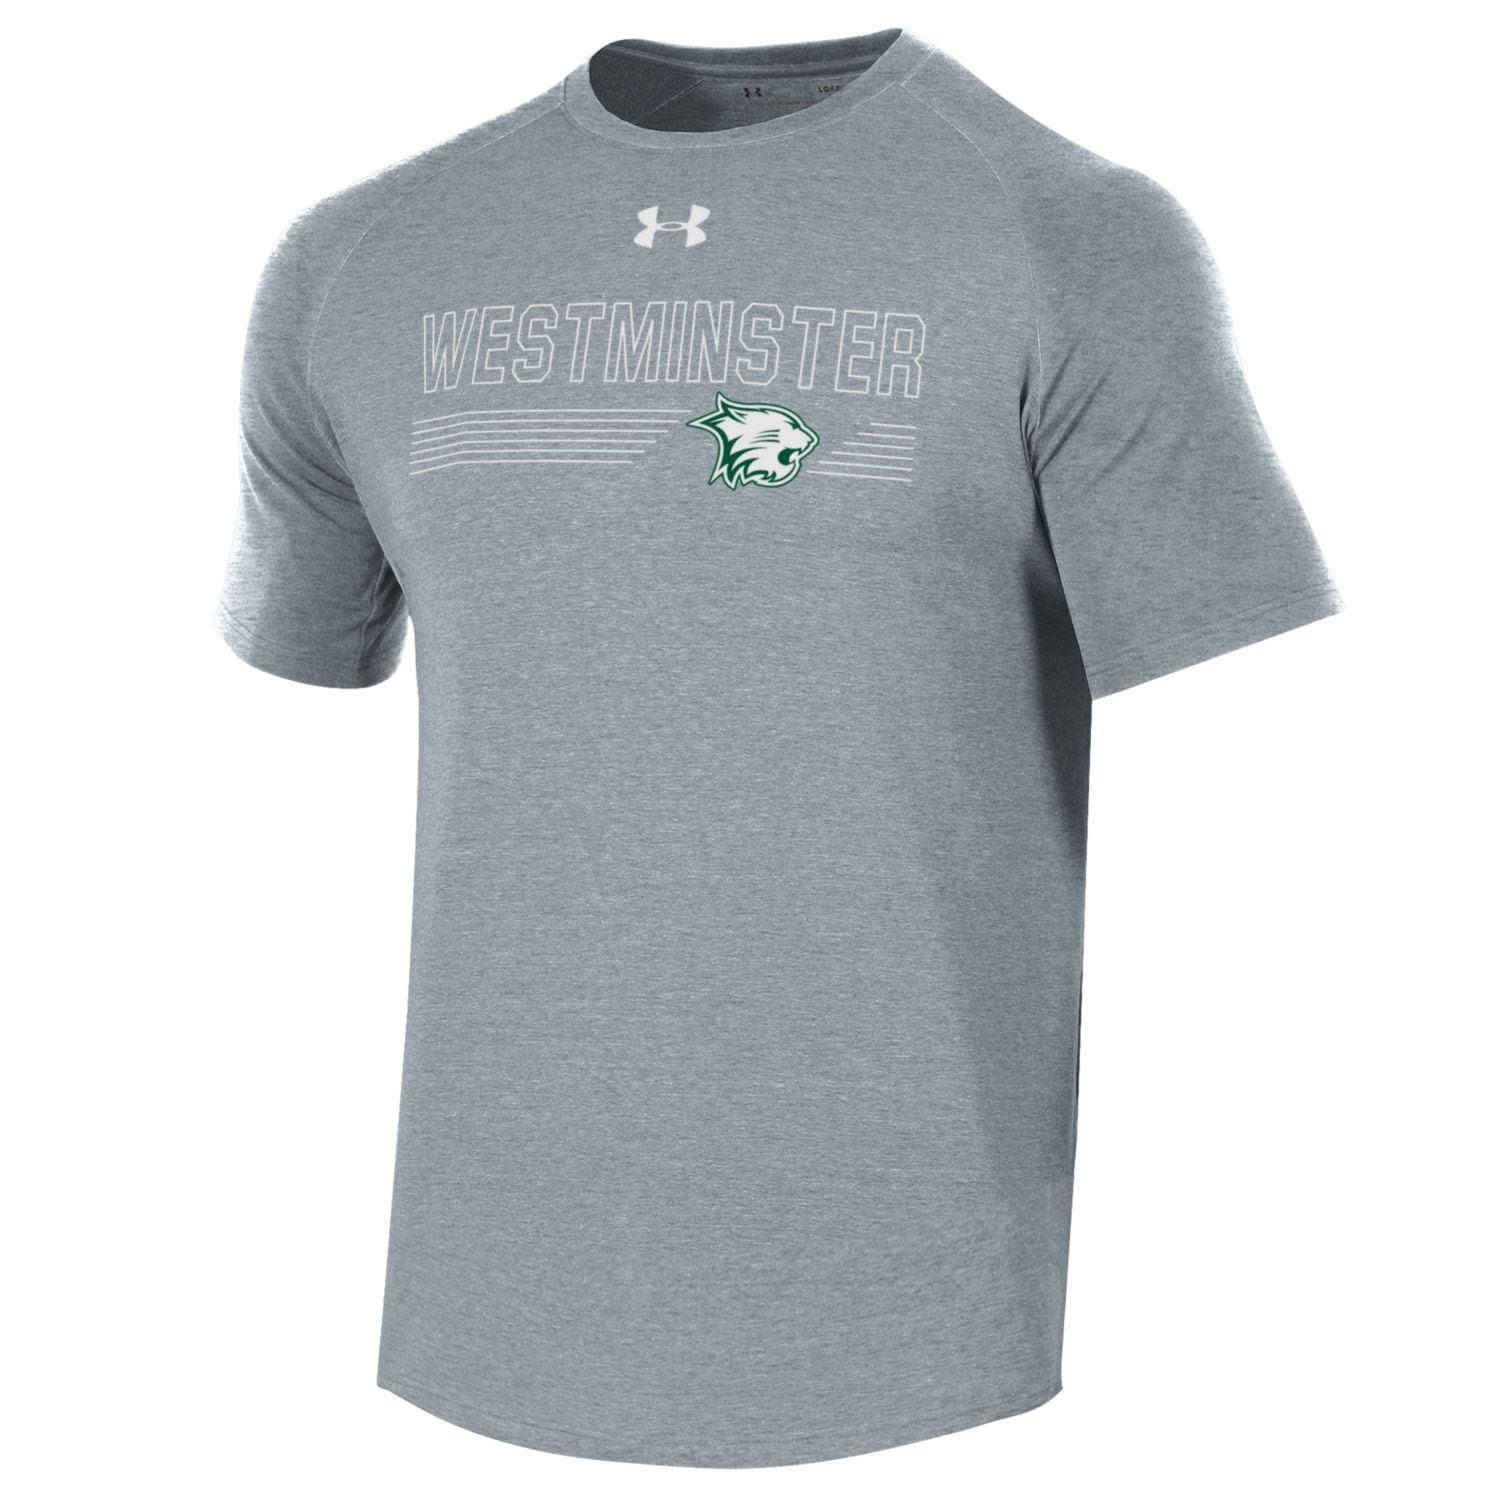 Under Armour T: Men's Dri-fit Westminster over Lines & Logo